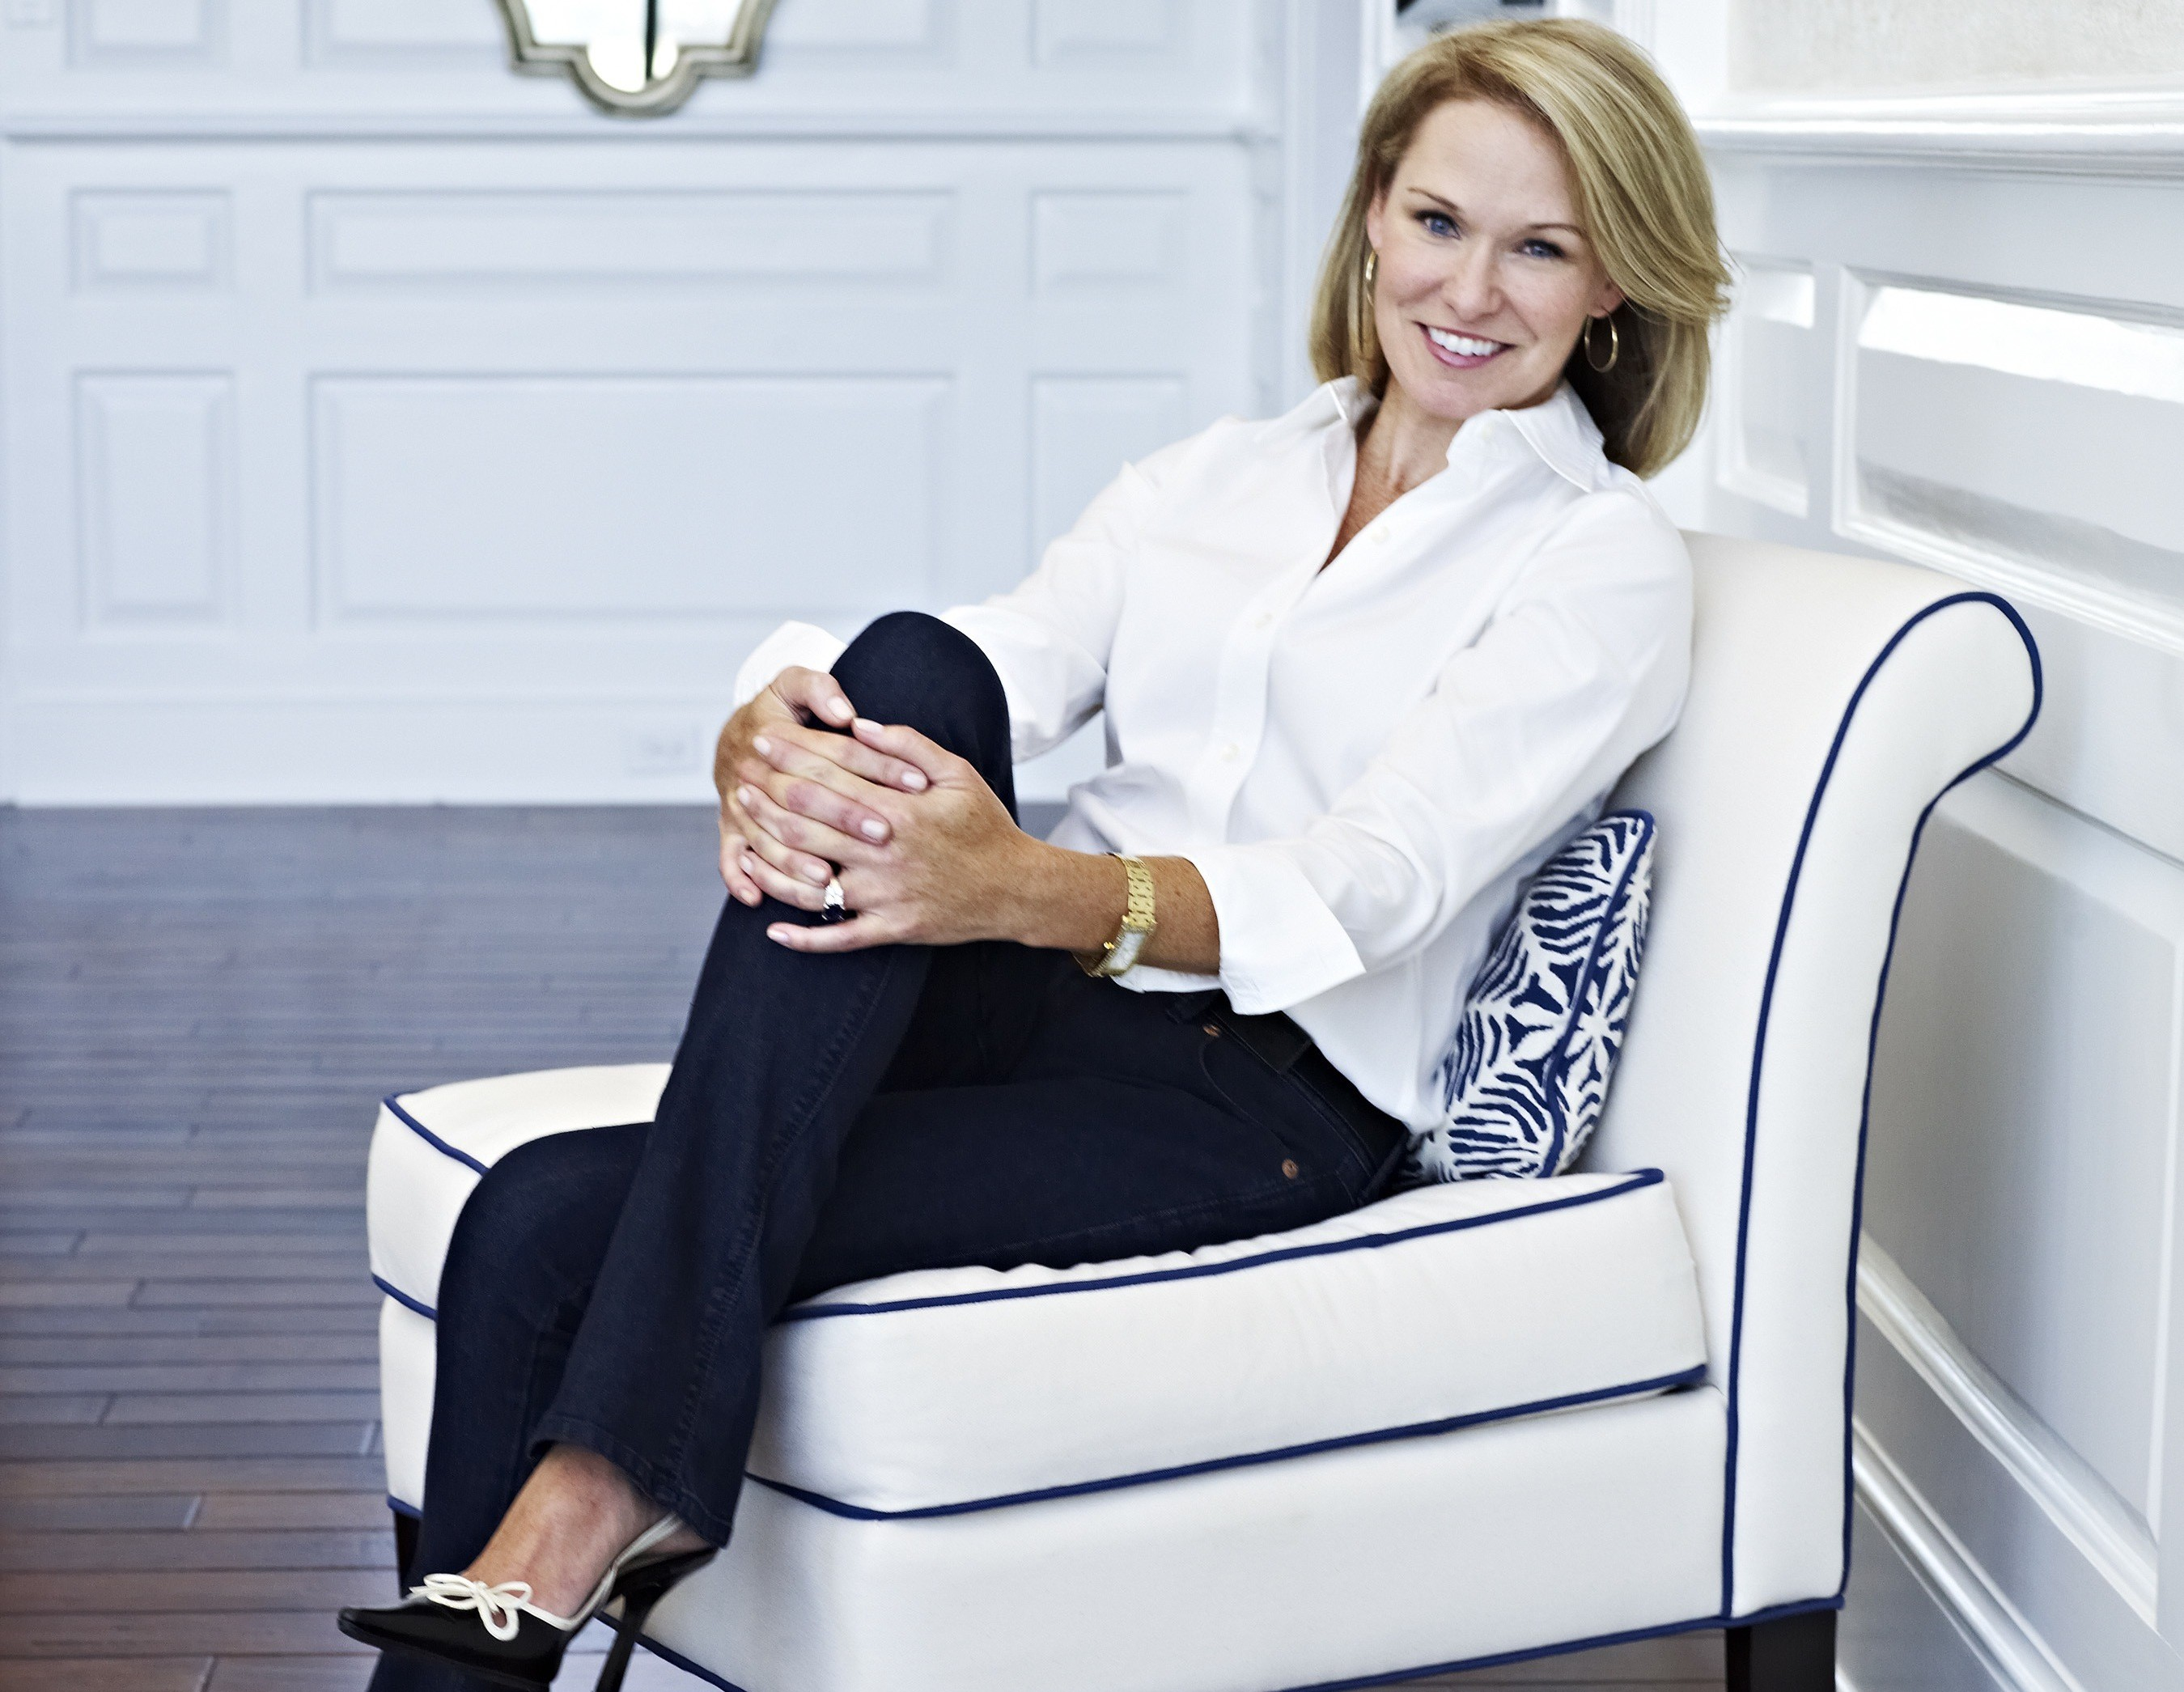 east end interior designer libby langdons brand is all about easy elegant everyday style she shares when i design homes for clients i want to create - Libby Langdon Furniture